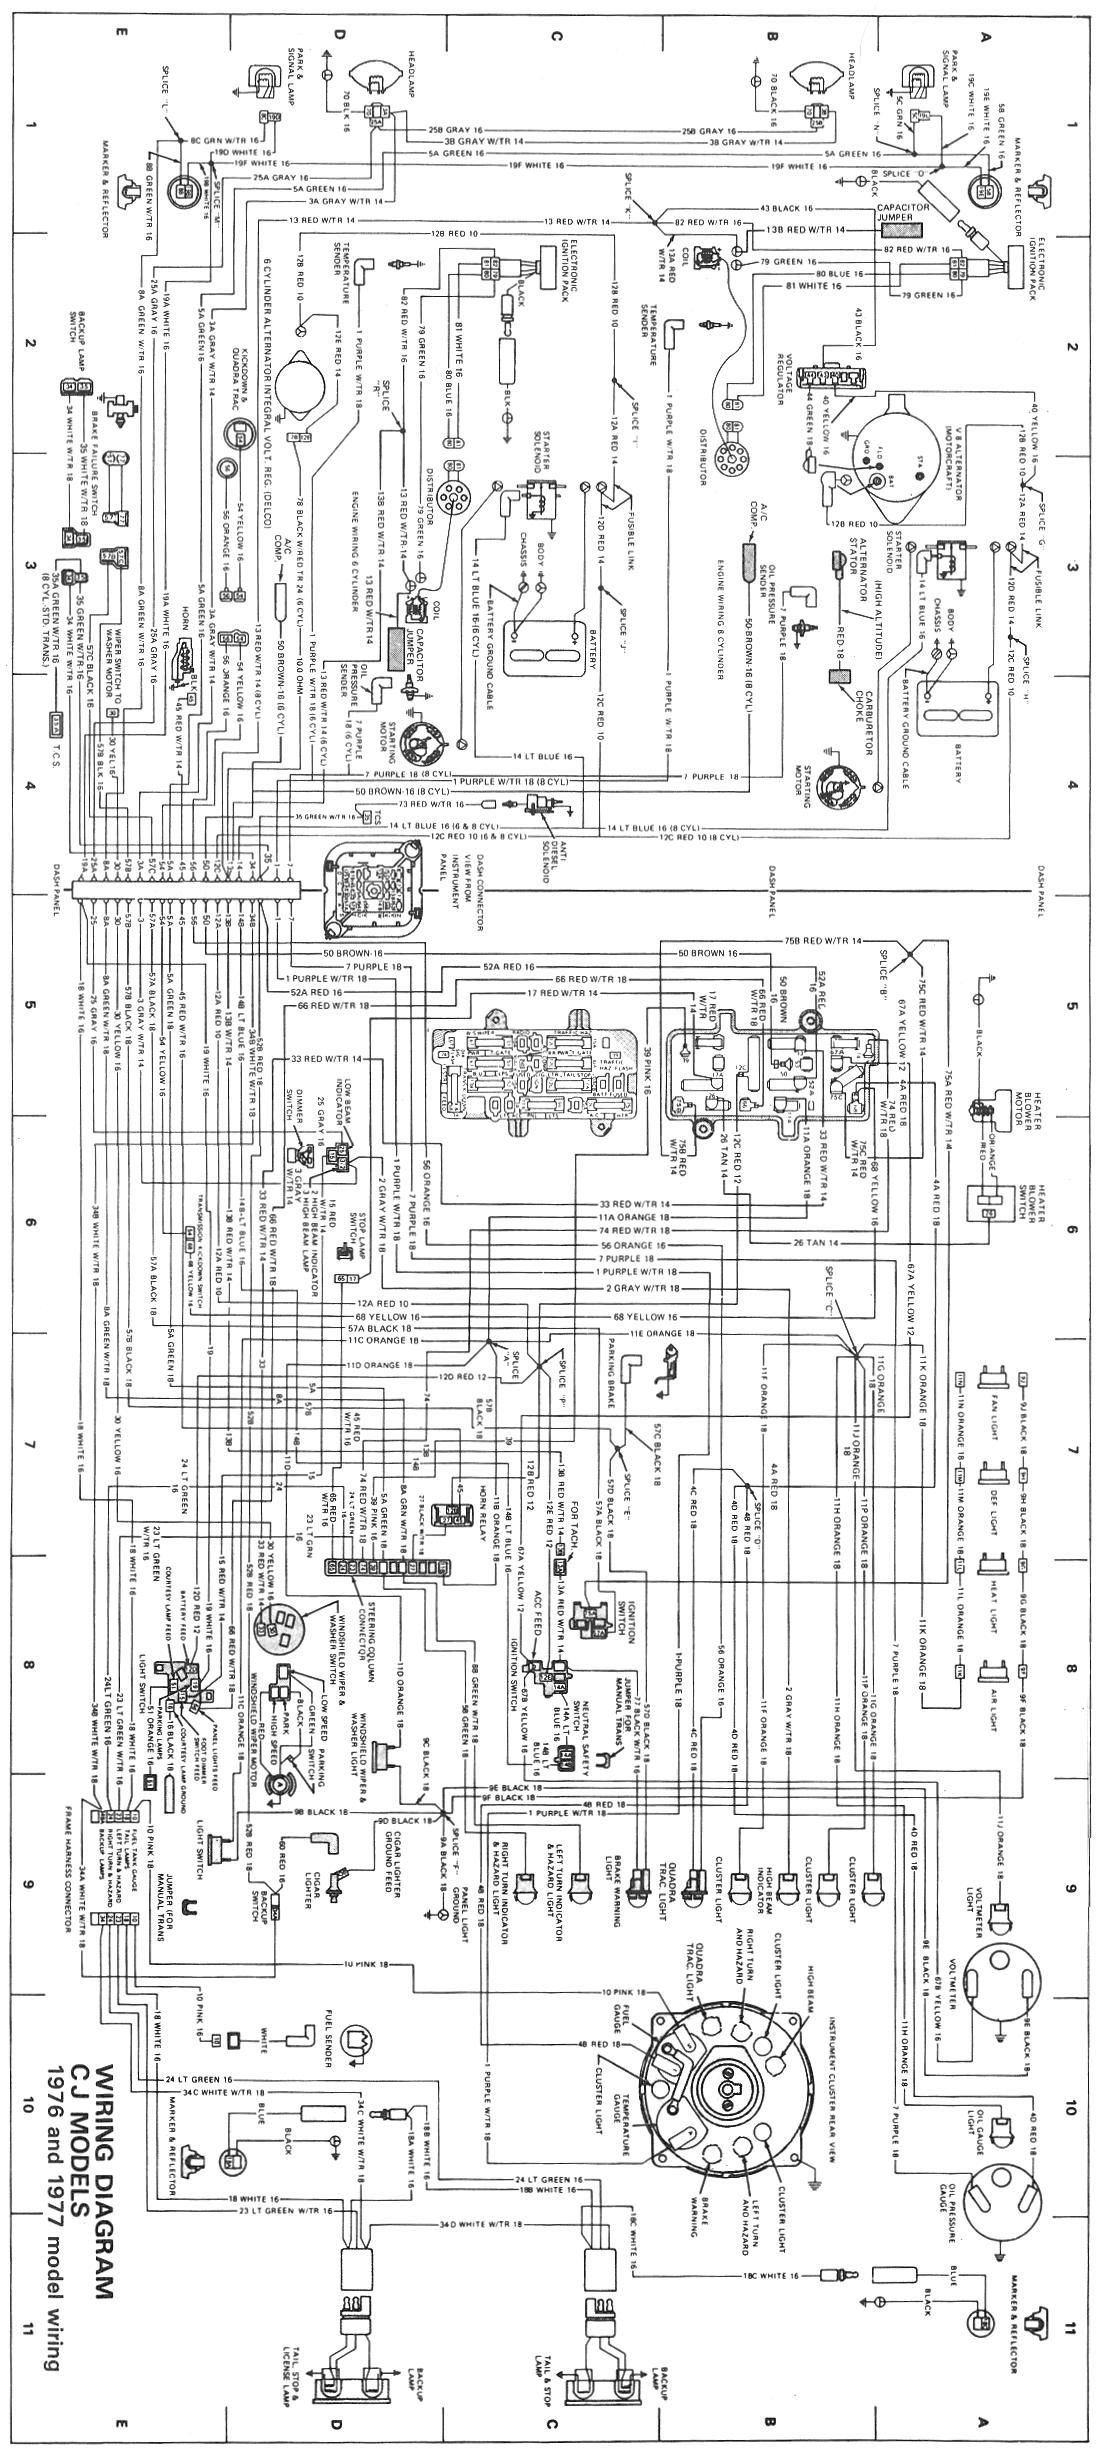 medium resolution of jeep wiring diagrams 1976 and 1977 cj jeep wiring pinterest rh pinterest com 1946 willys jeep wiring harness 1945 willys jeep